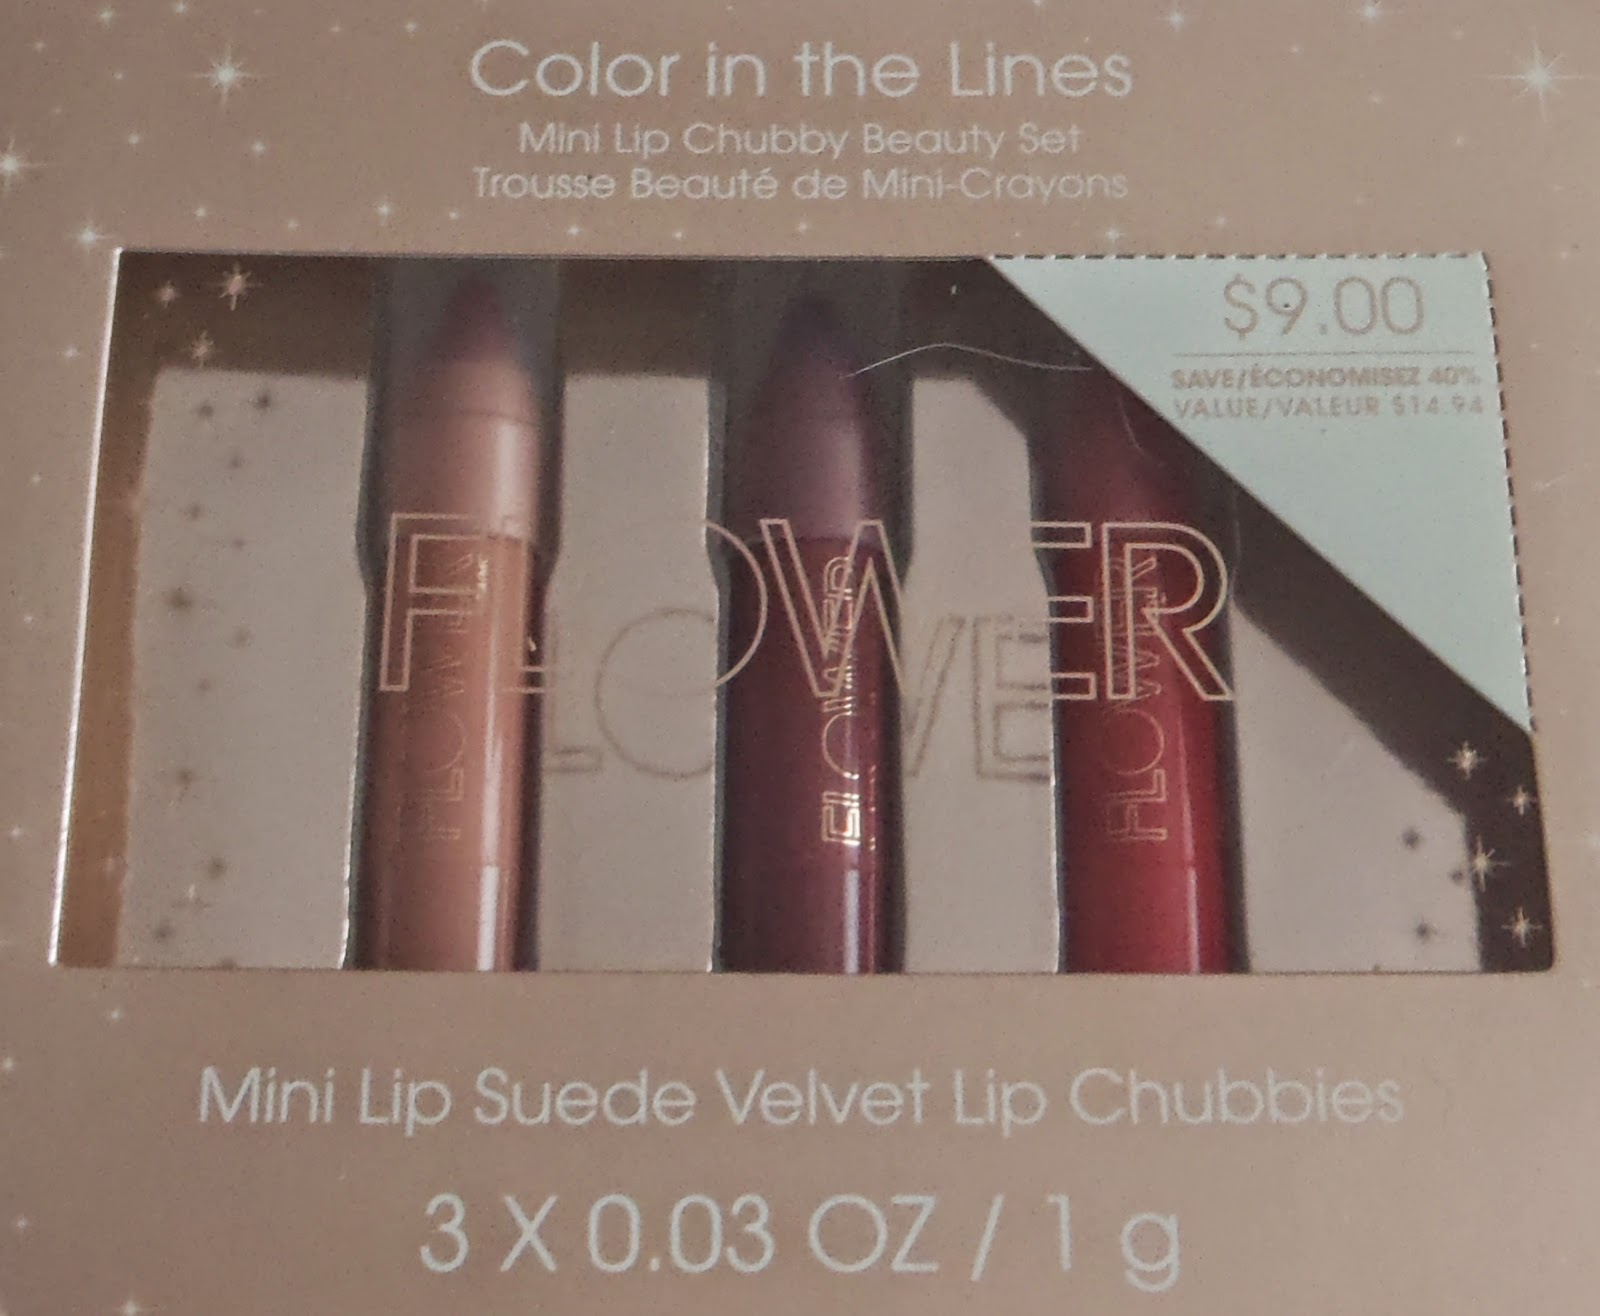 Sparkled beauty flower beauty color in the lines flower beauty lip suede velvet lip chubbies 009oz 3g full size 798 each are twist up lip crayons with a satin matte velvet finish izmirmasajfo